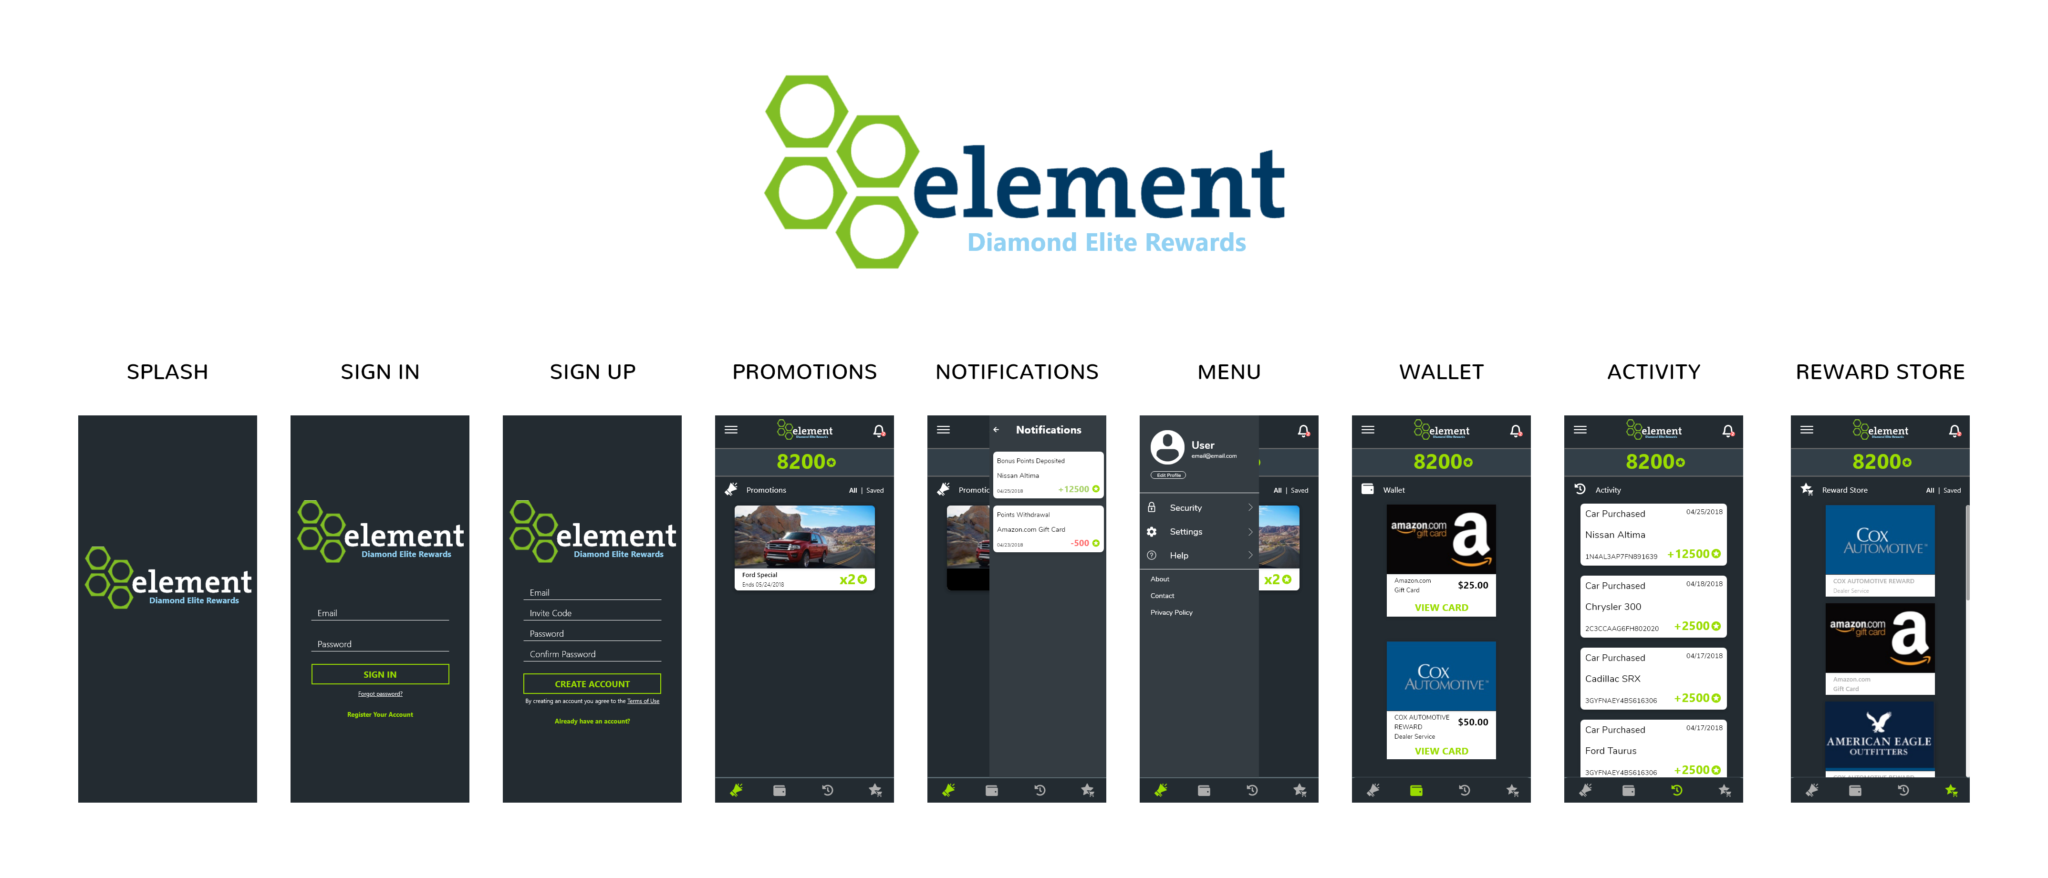 Manheim Elements now has a mobile app that is responsive